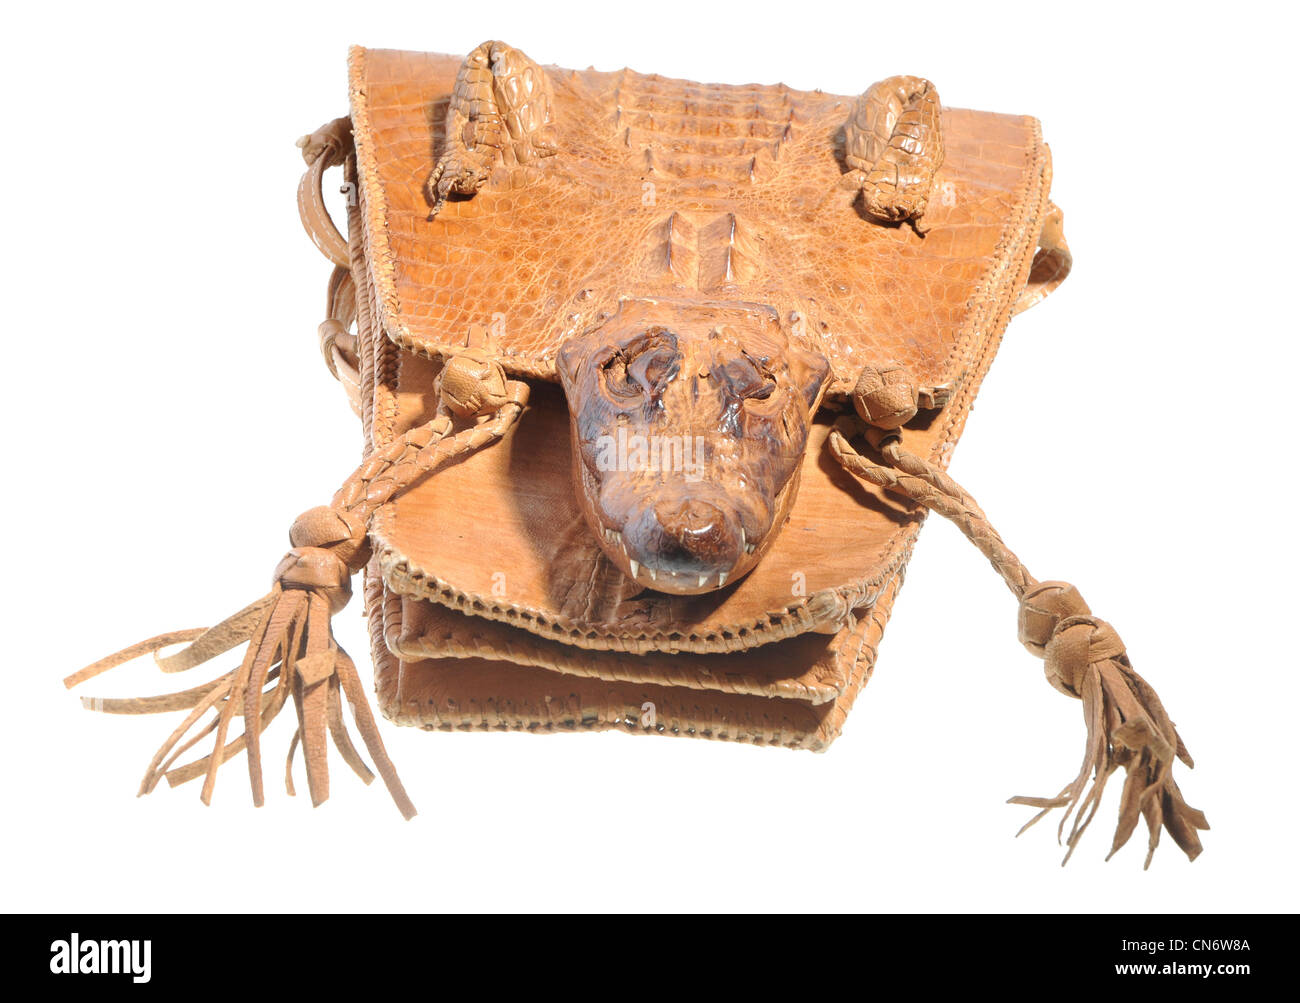 crocodile leather handbag - illegal endangered species product from CITES list - Stock Image